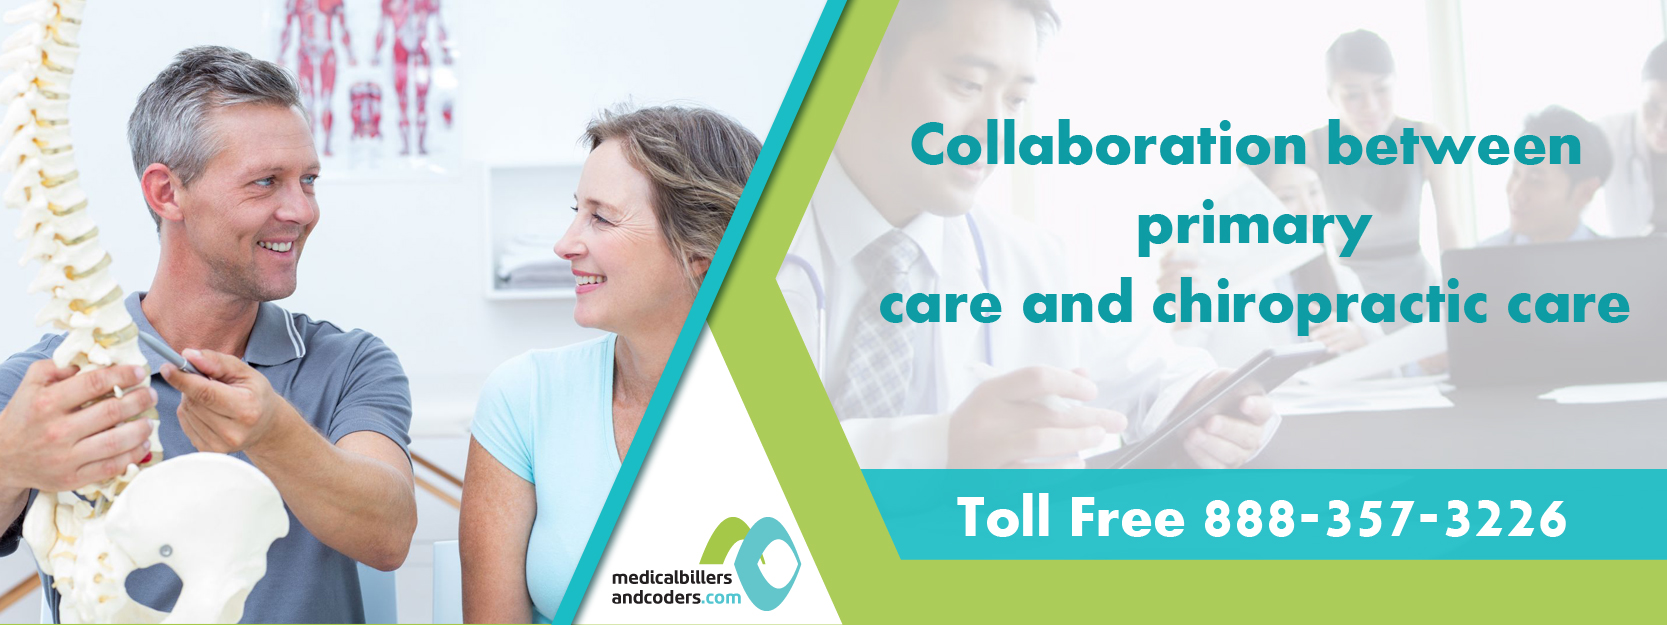 Collaboration-between-primary-care-and-chiropractic-care.jpg